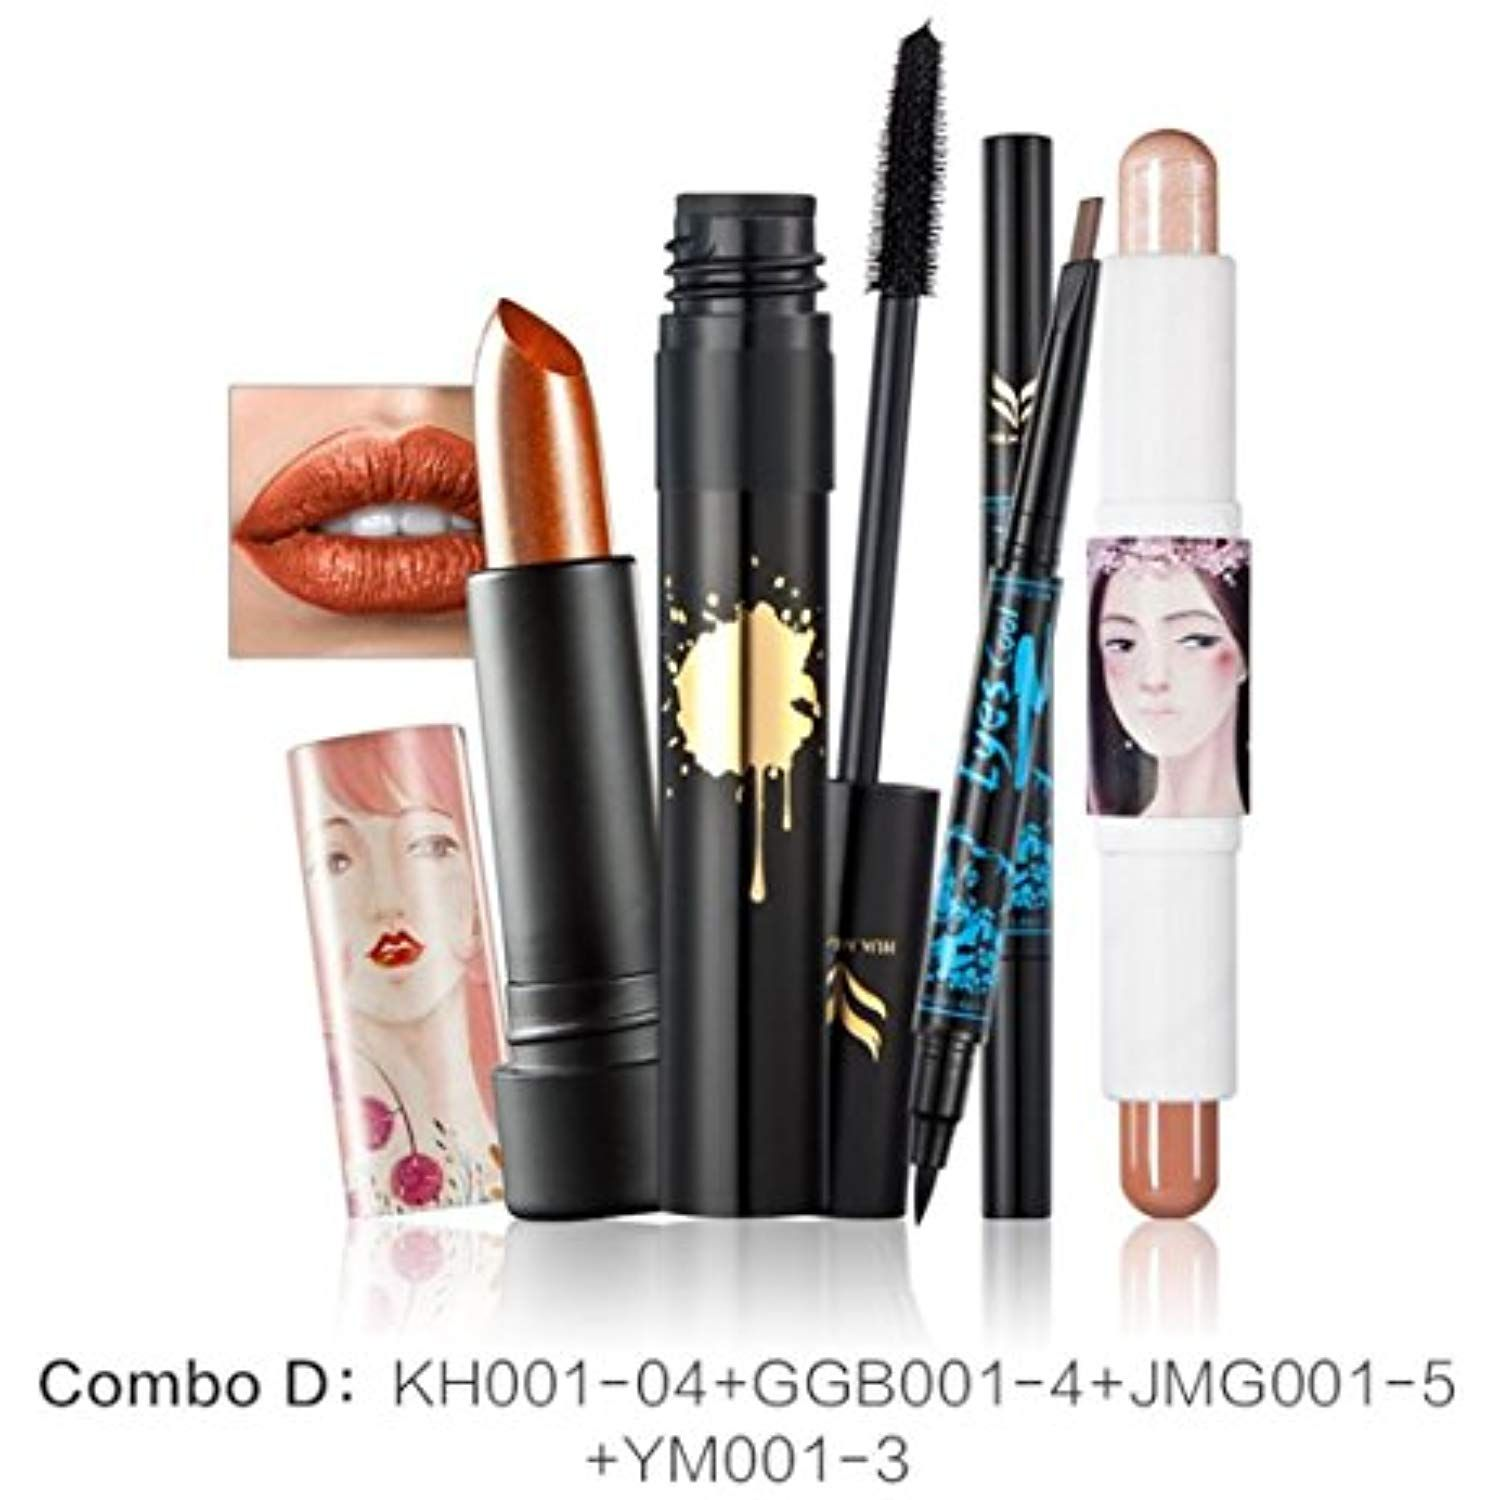 Charming Cosmetic Set, Lotus.flower 4 In 1 Makeup Kit